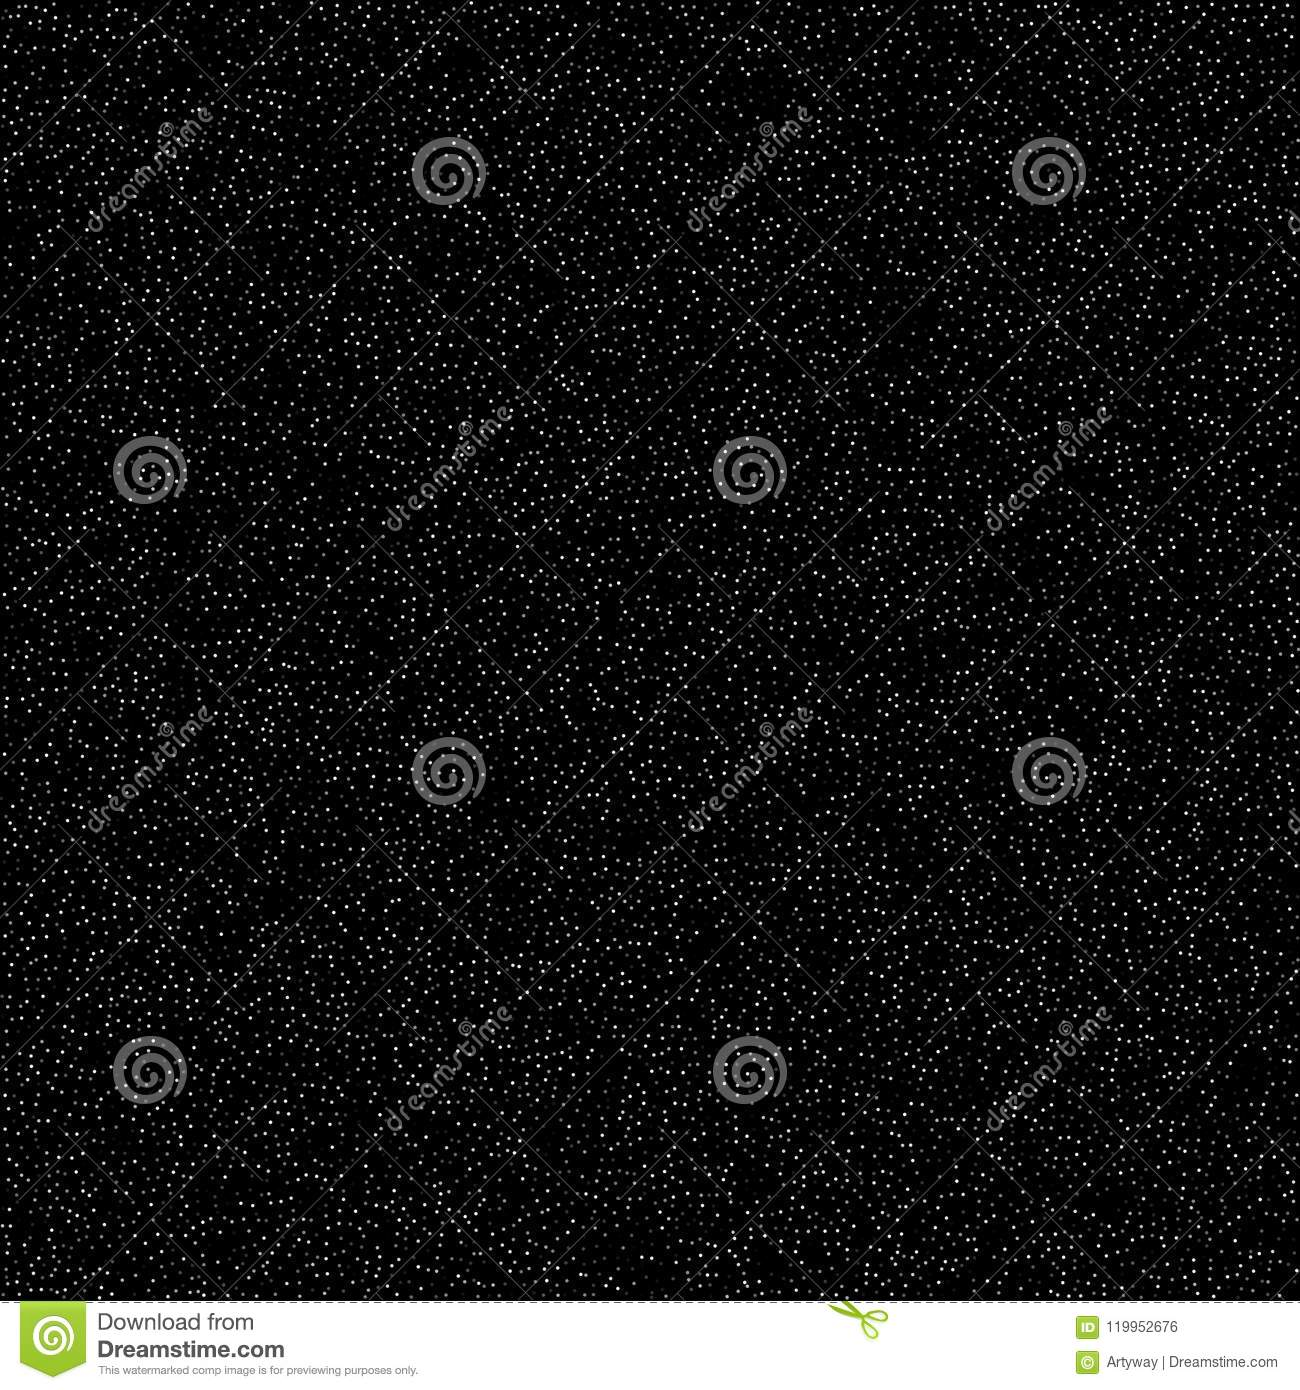 Noise pattern, digital effect. Sky with stars, simple flat design. Many white dots on black background, vector